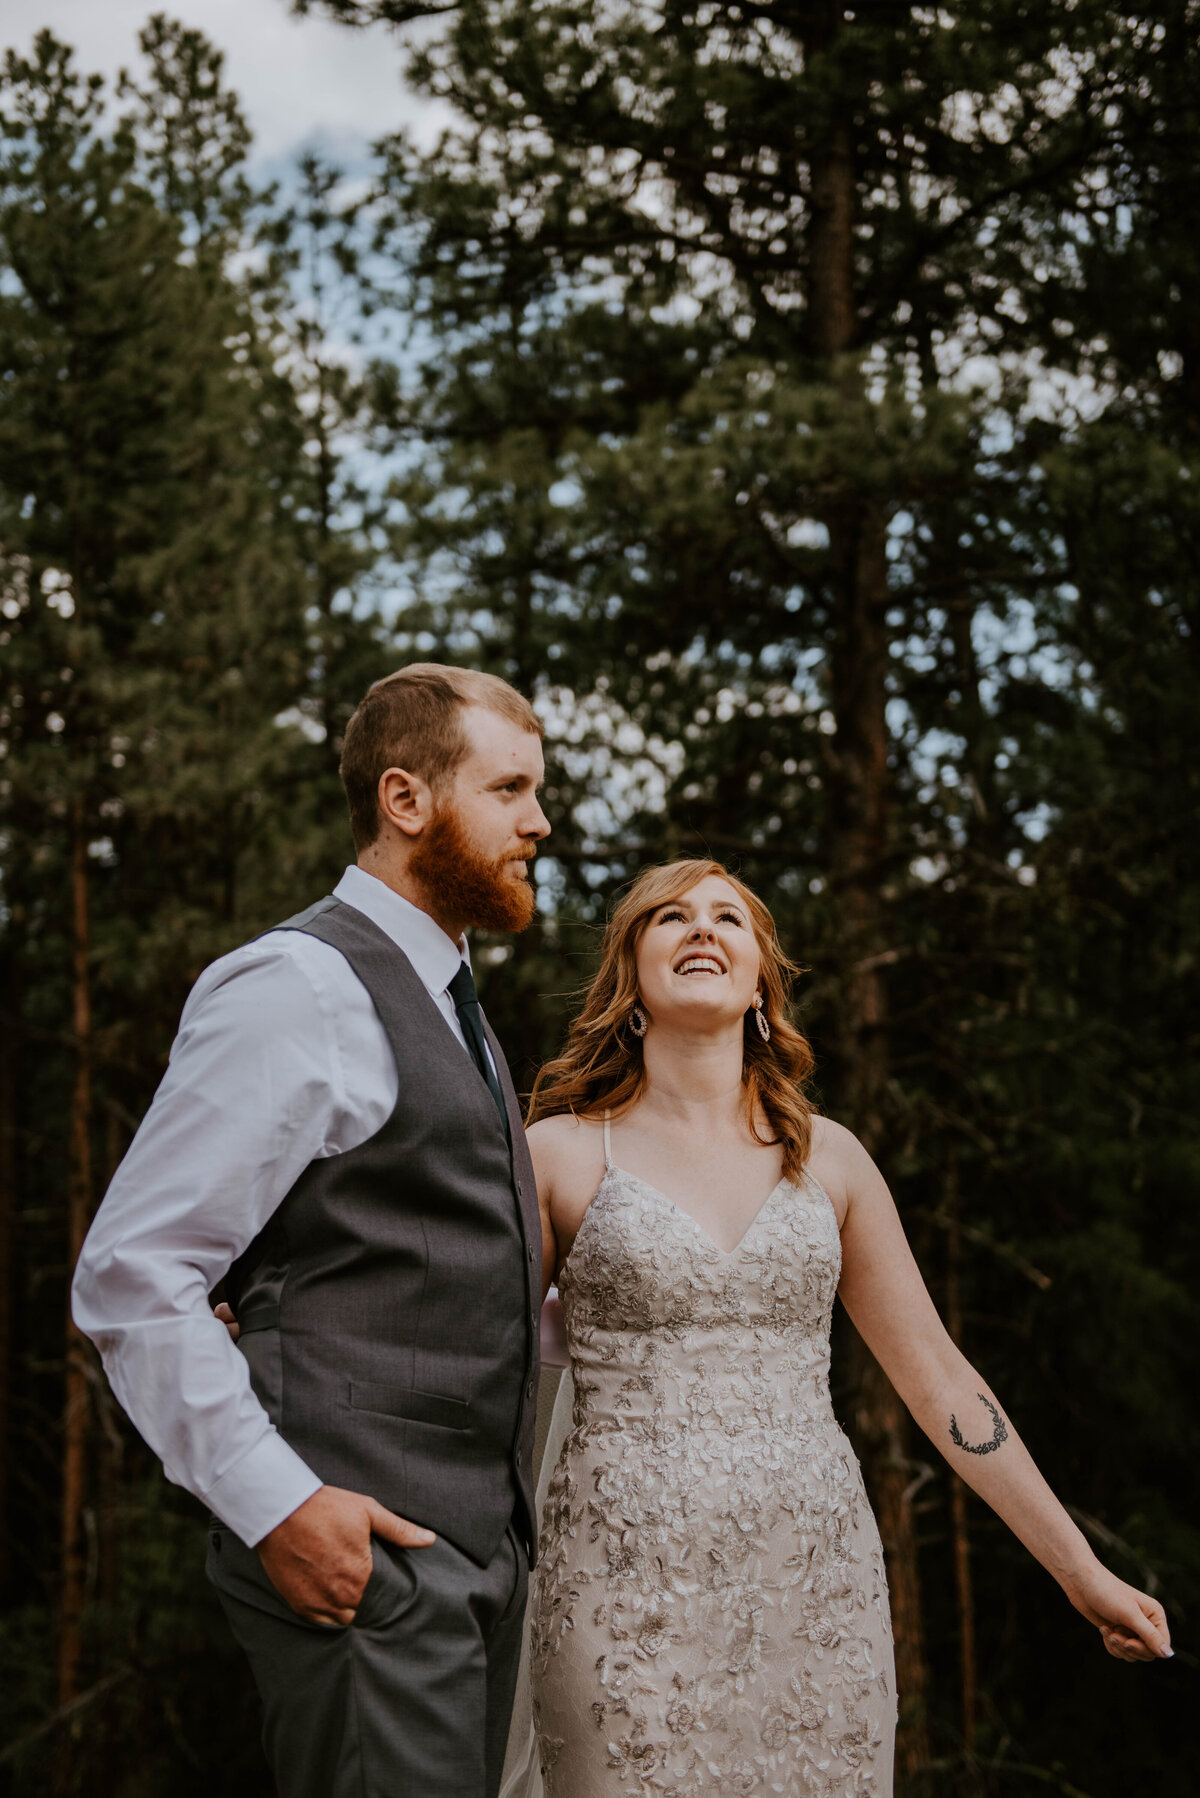 ochoco-forest-central-oregon-elopement-pnw-woods-wedding-covid-bend-photographer-inspiration1488